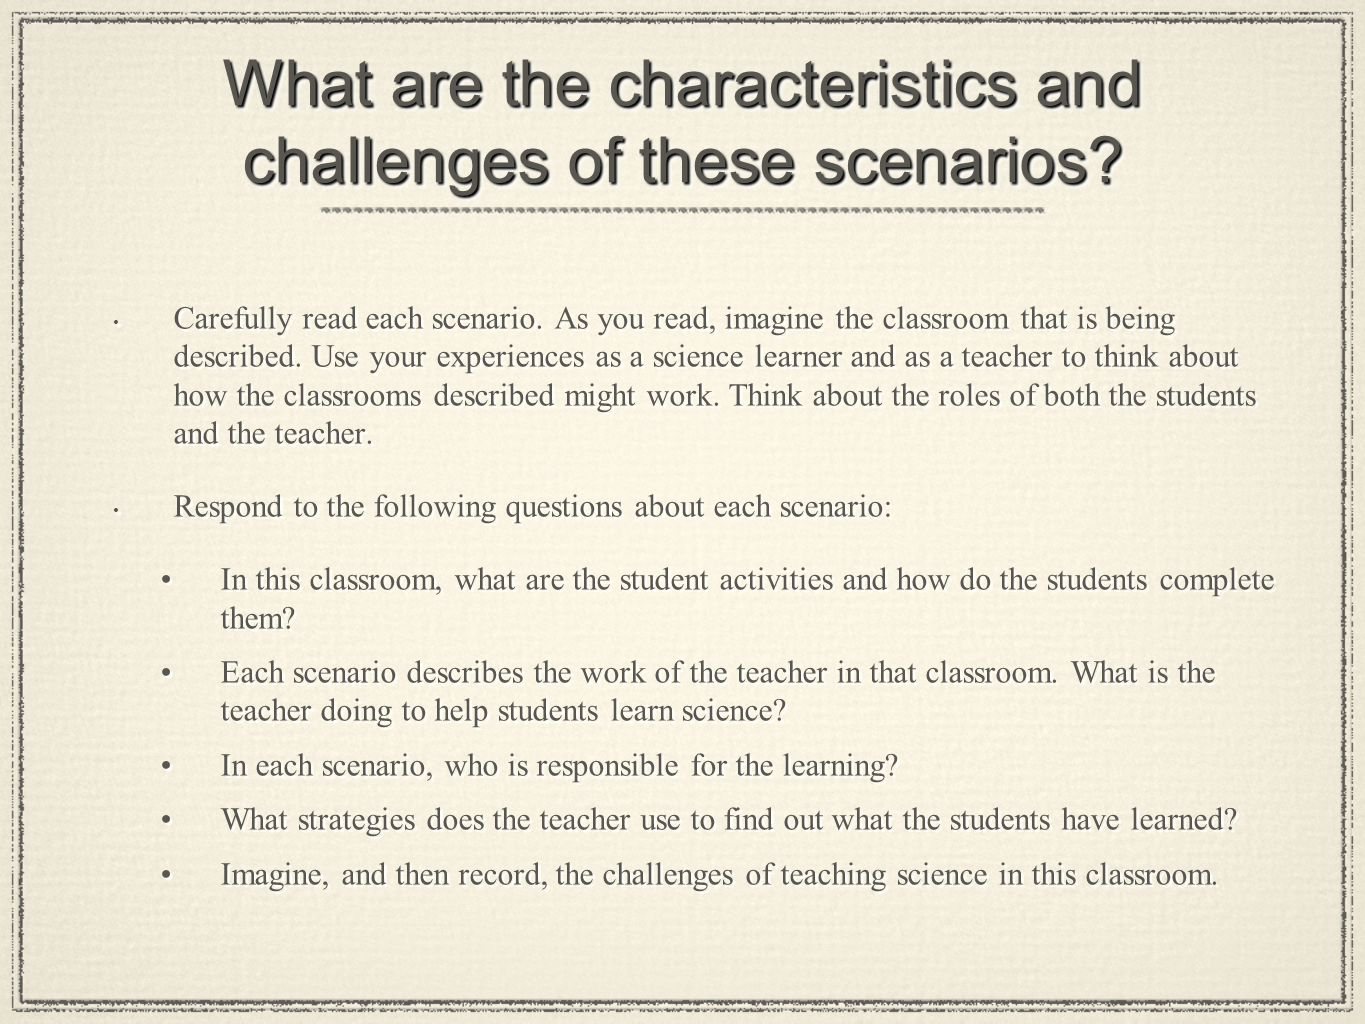 What are the characteristics and challenges of these scenarios.